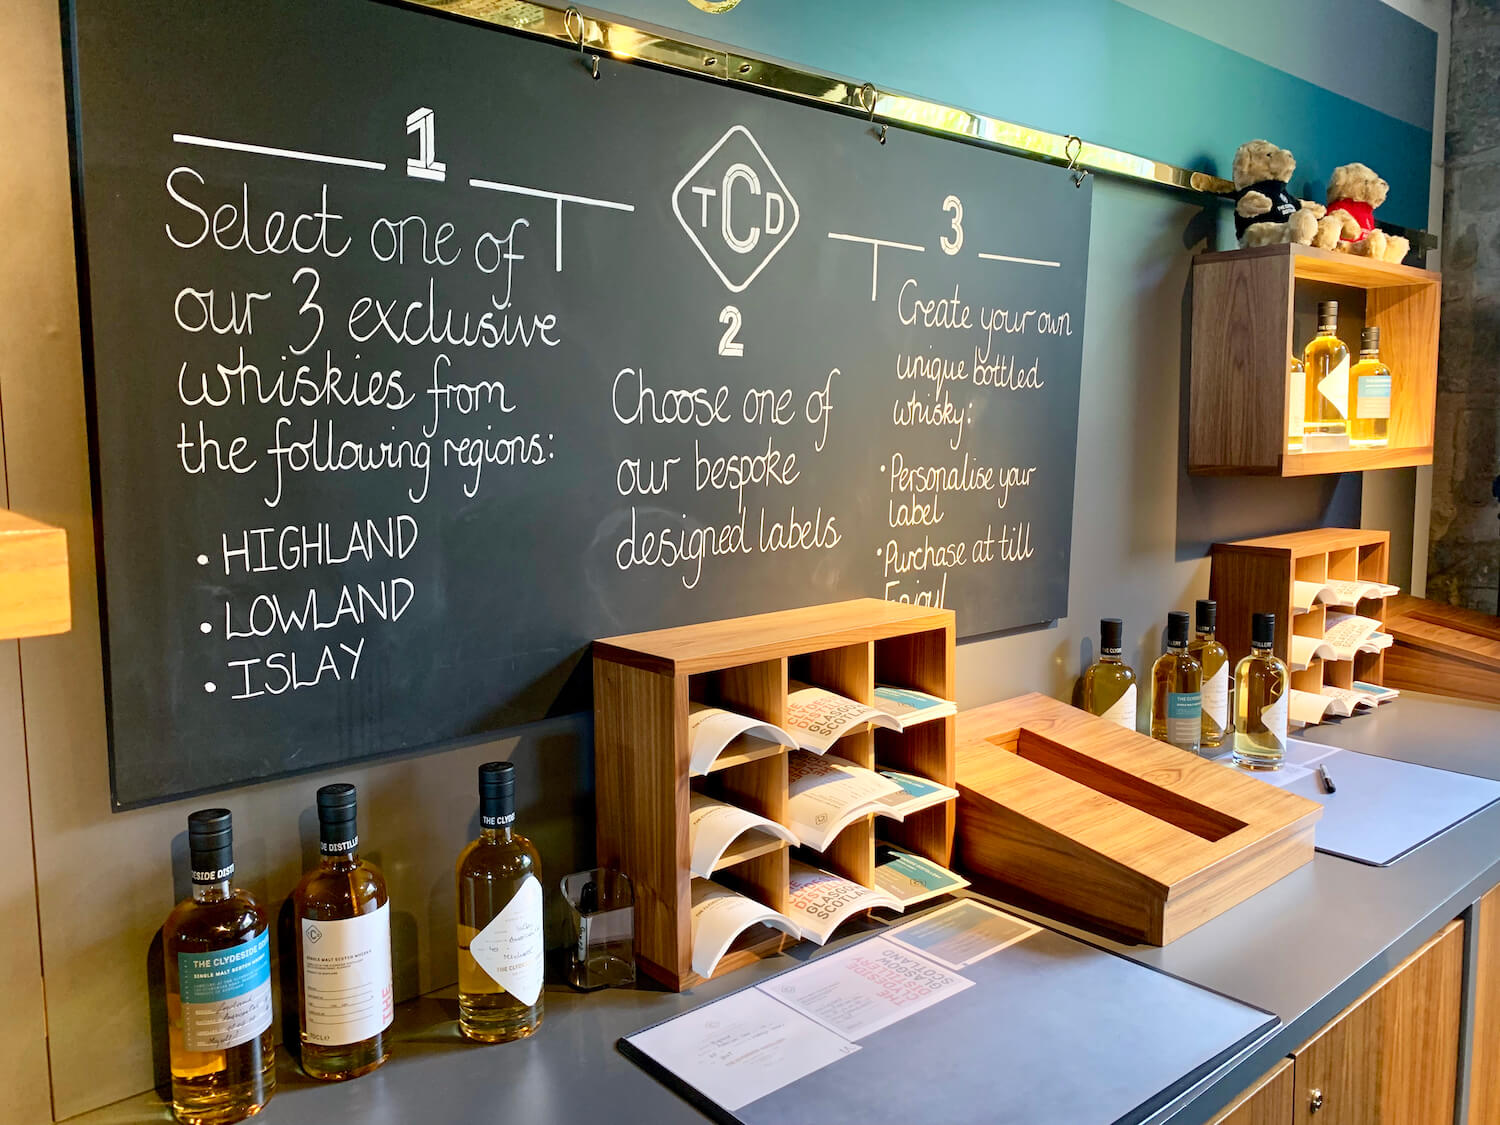 The Clydeside Distillery - Create Your Own Whisky Bottle